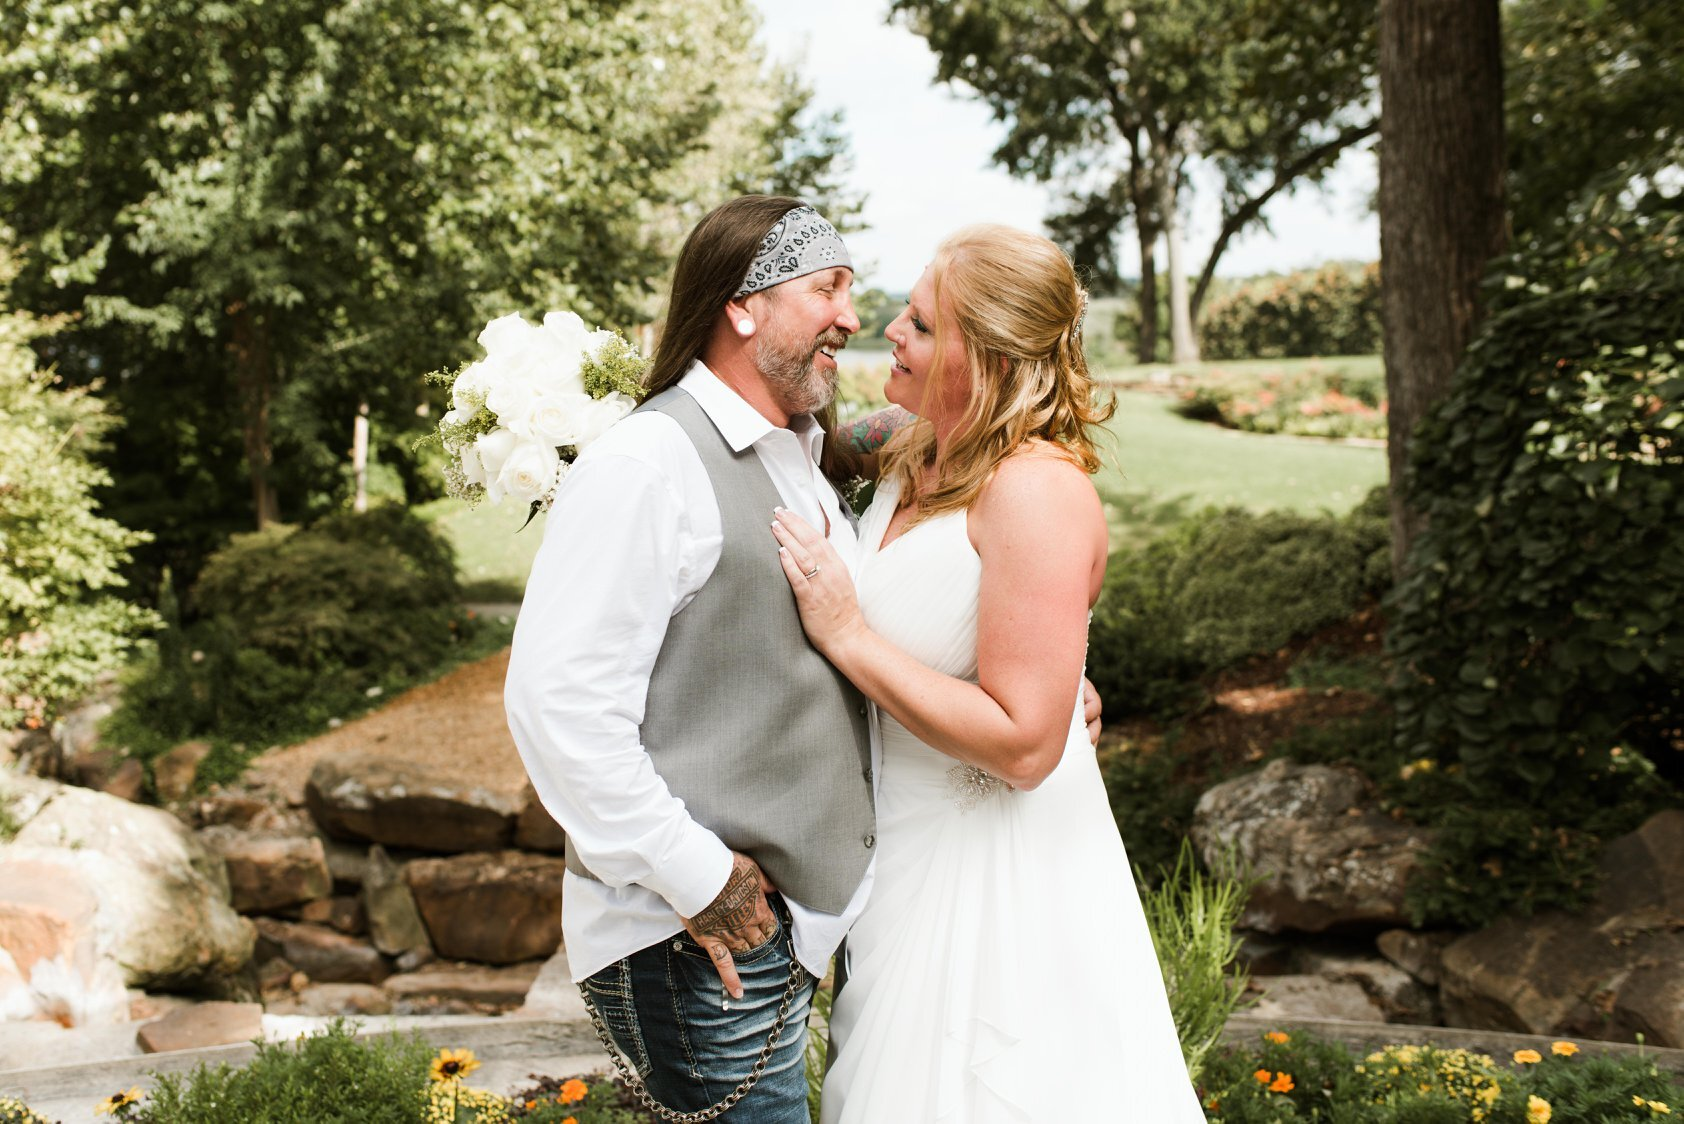 """Jason Stewart - """"Stewart WeddingShelton is very easy to talk to and blends in with the guest to get some really natural pictures ! We also loved his """"natural """"posed shots . It was a wonderful experience overall!"""""""